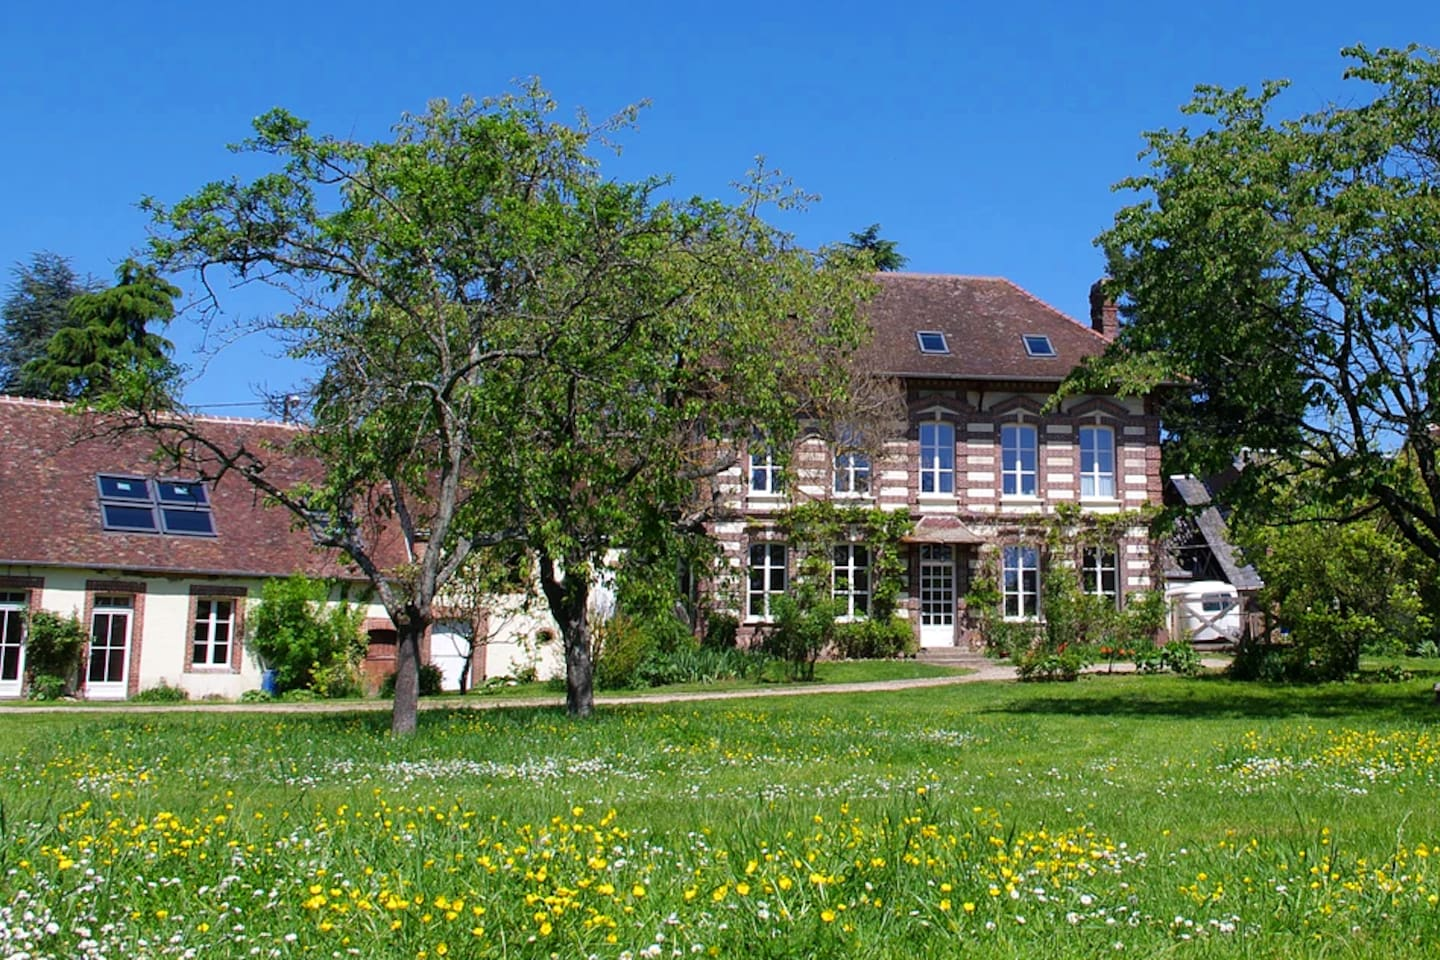 Come have a relaxing stay in a working sheep farm in picturesque French countryside yet only an hour from the capitol.